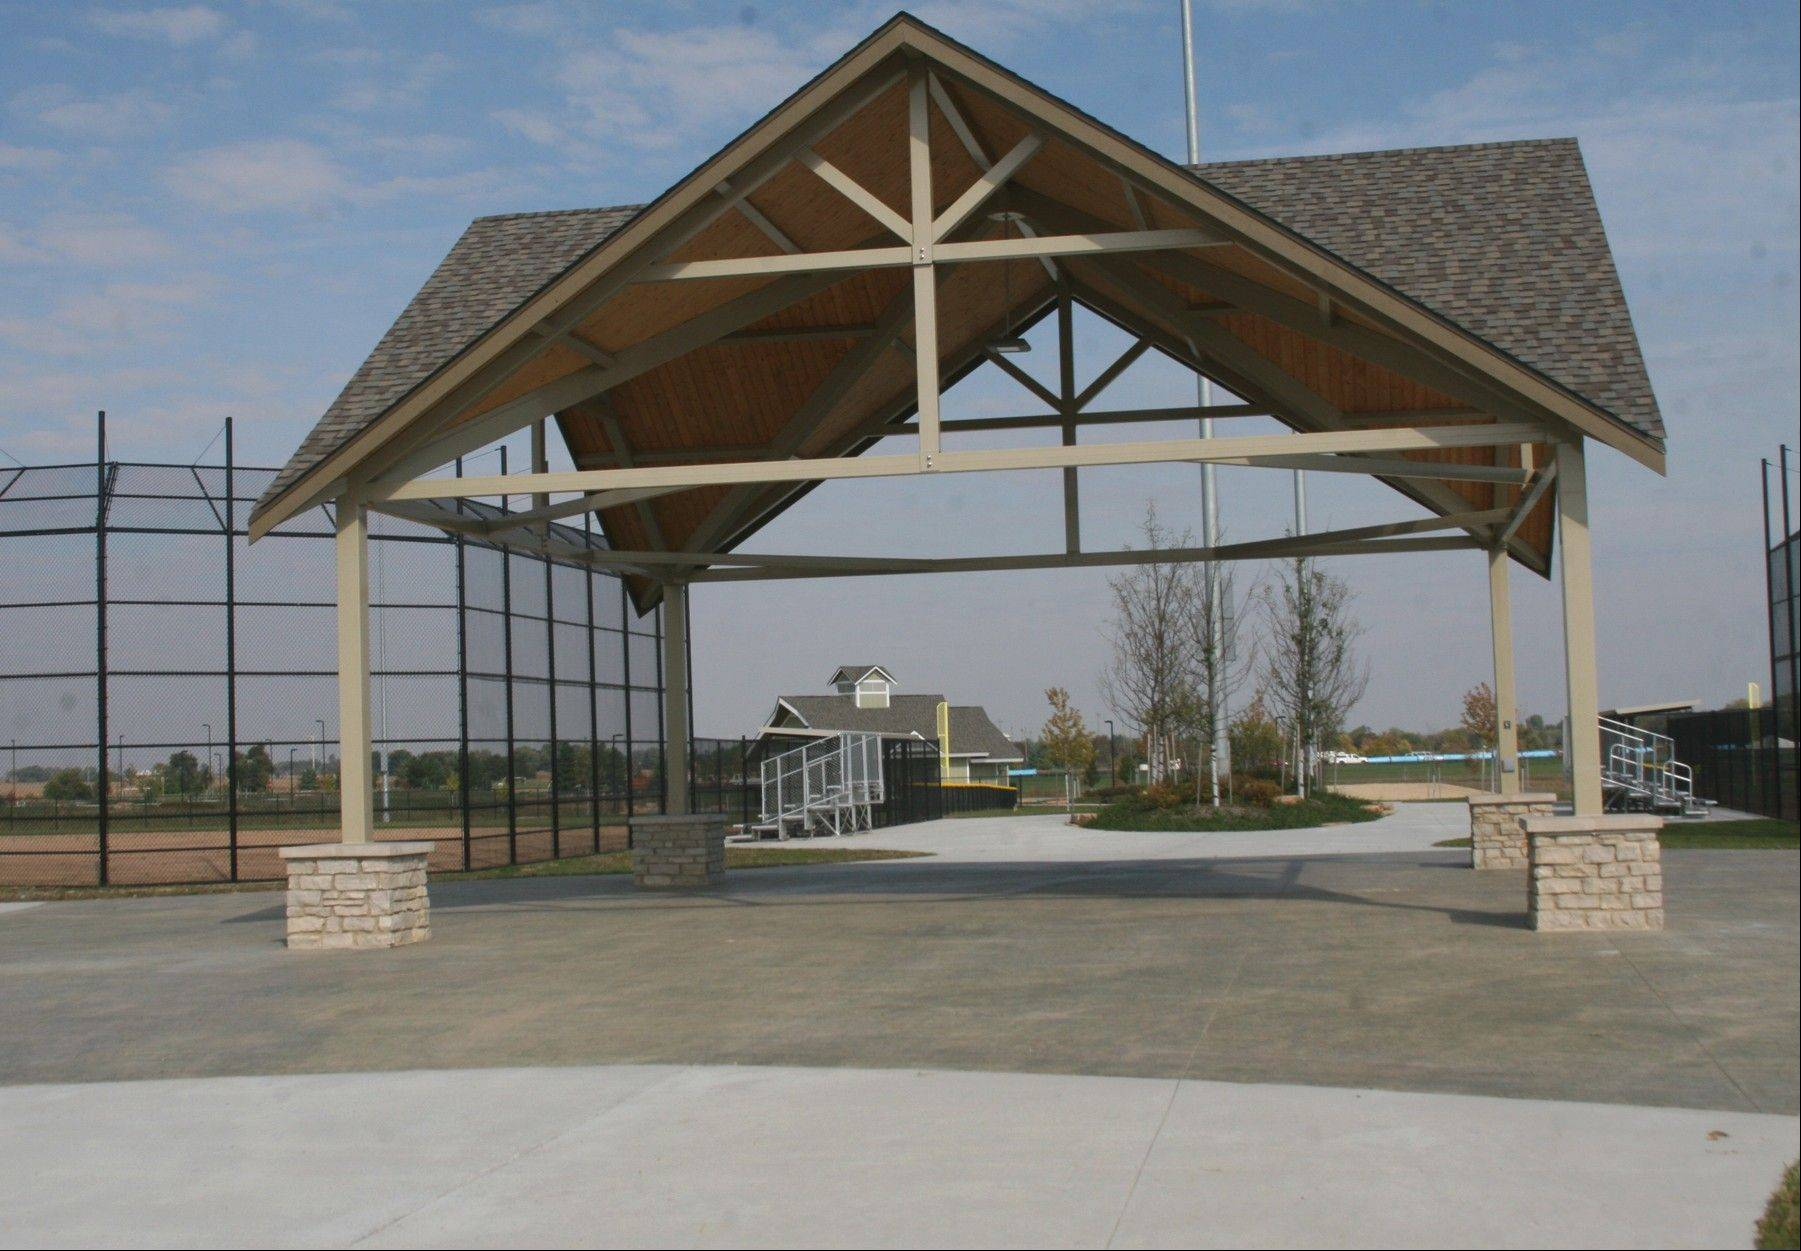 Four new ball fields radiate from a stylish shelter that serves as the hub for a 135-acre expansion — which also includes 11 additional soccer fields — at Stuart Sports Complex in Montgomery. Estimates are for a mid-2014 opening.